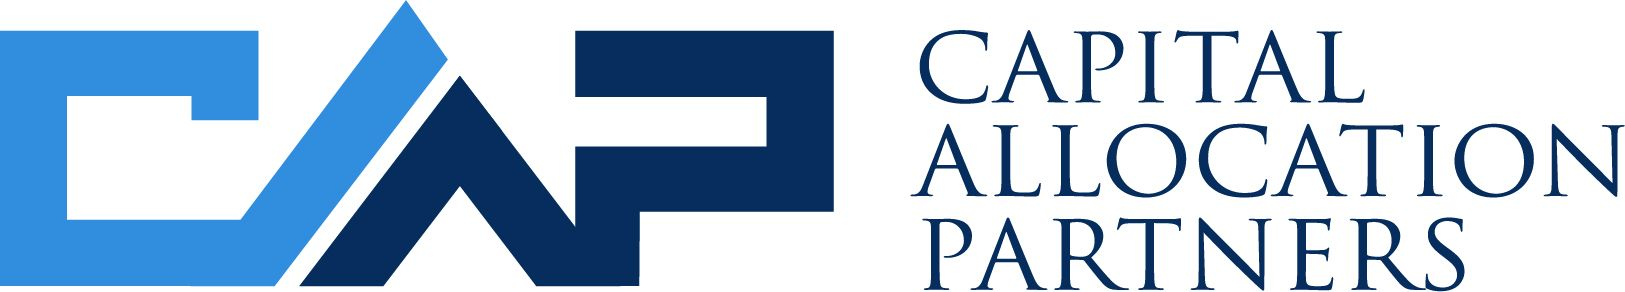 Capital Allocation Partners Logo